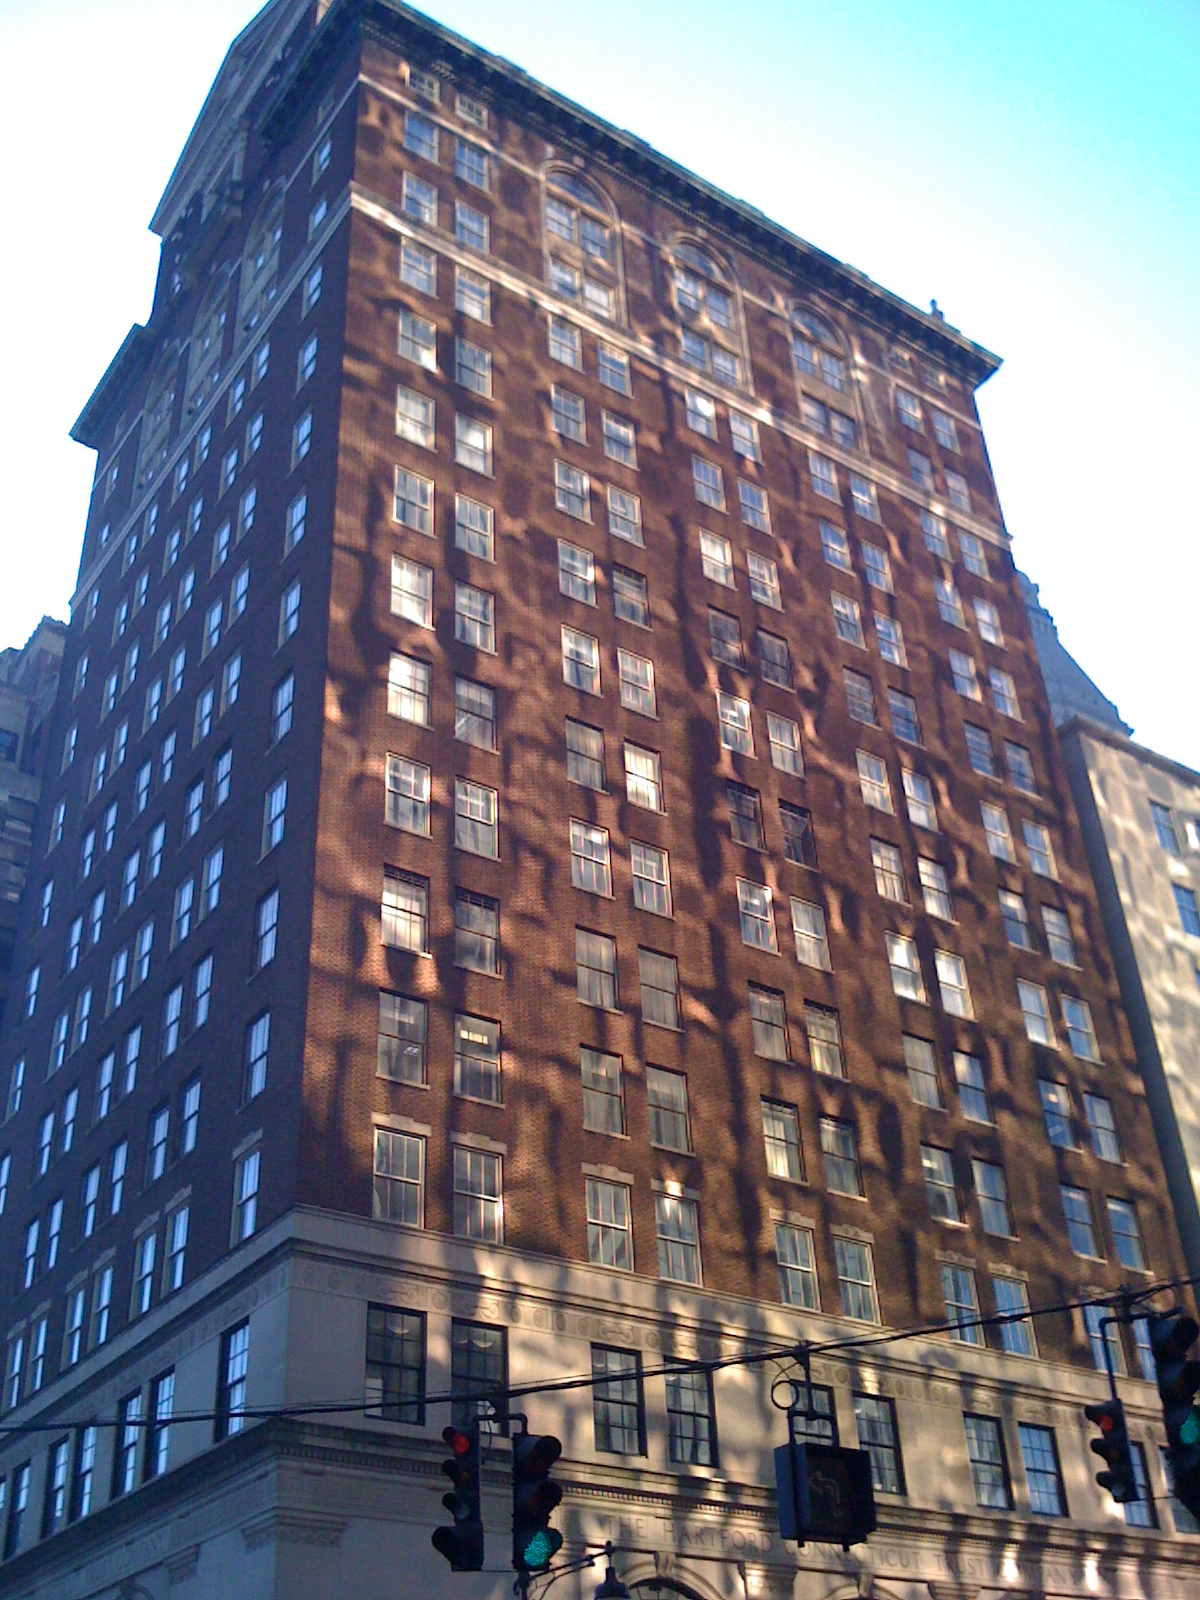 The Hartford At Work >> File:The Hartford Trust Building, reflections.jpg ...